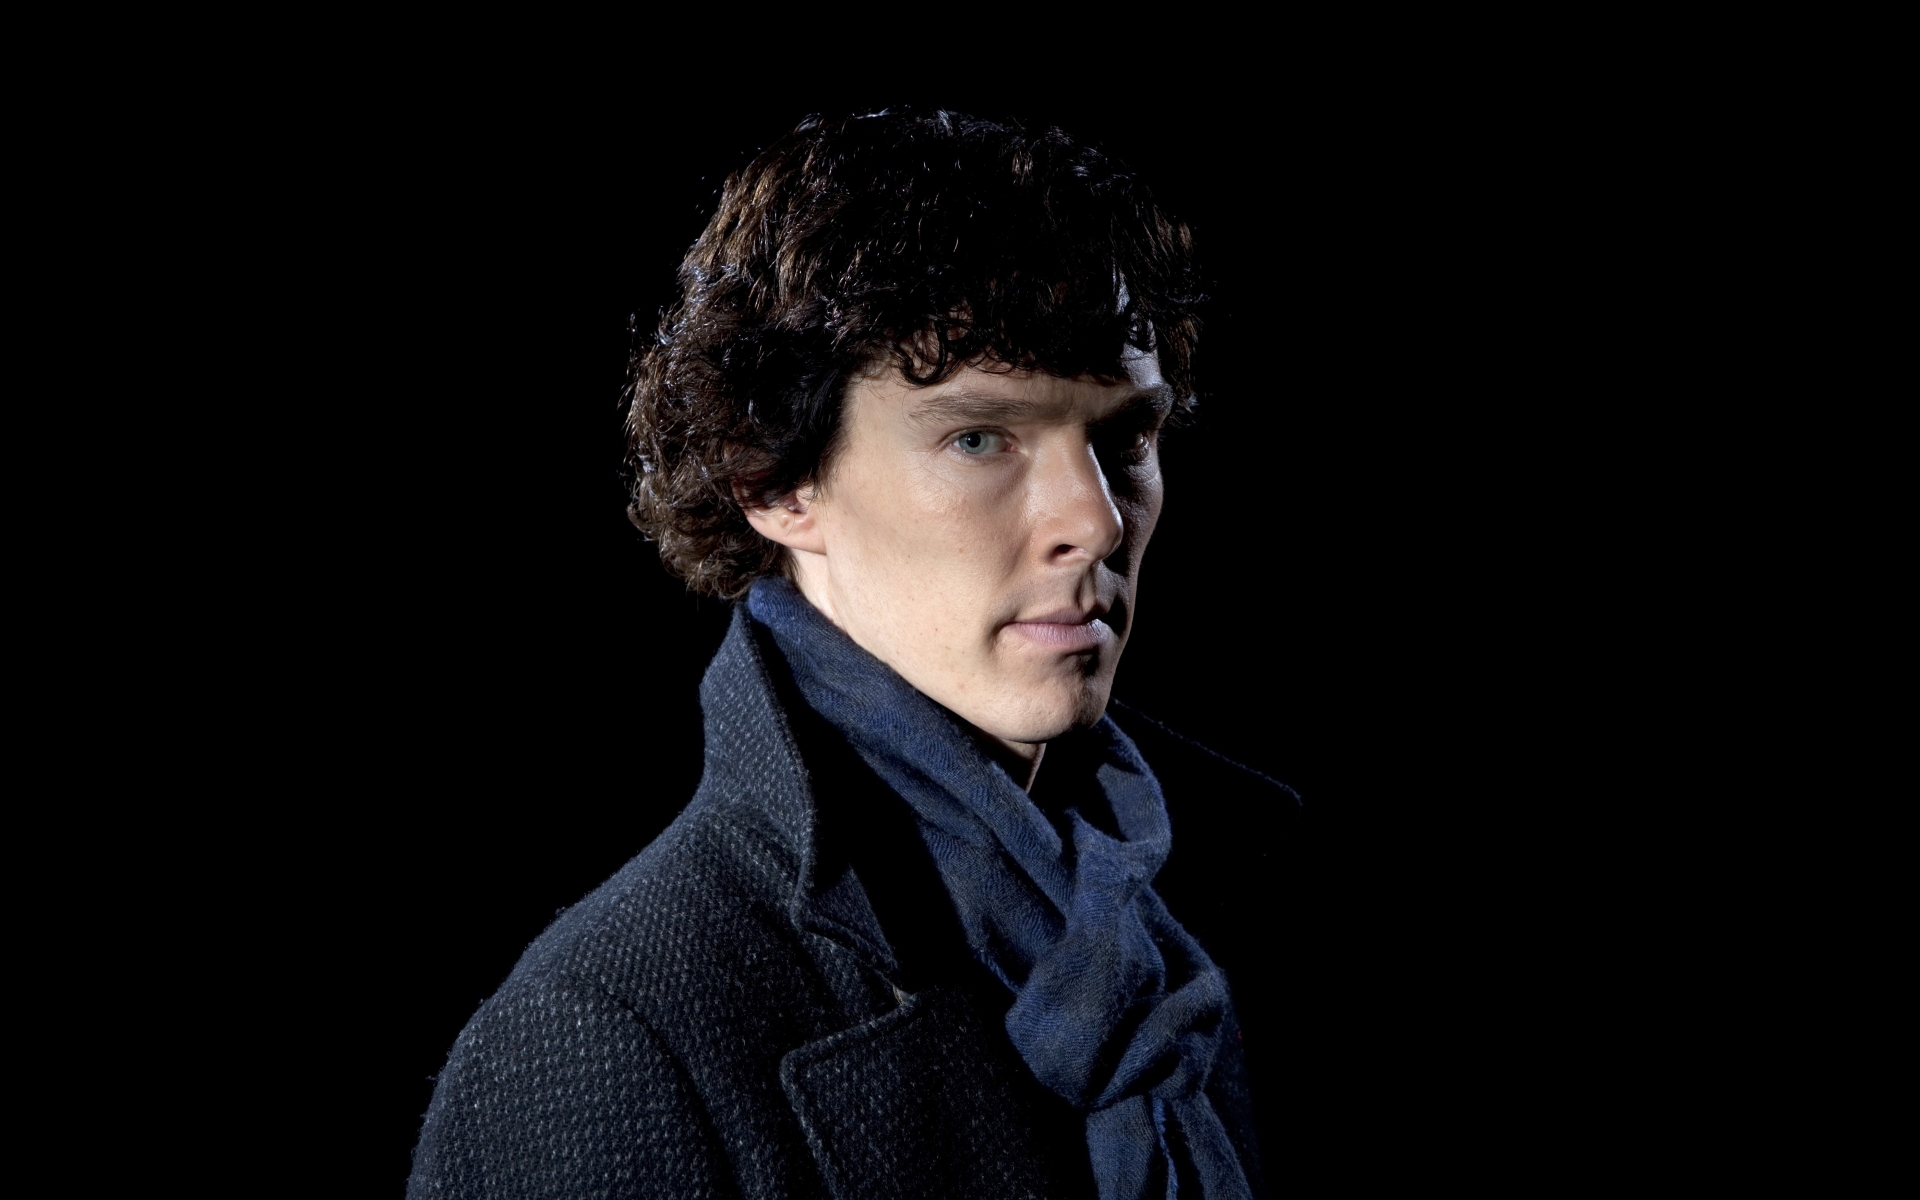 benedict_cumberbatch_actor_man_thoughtfu